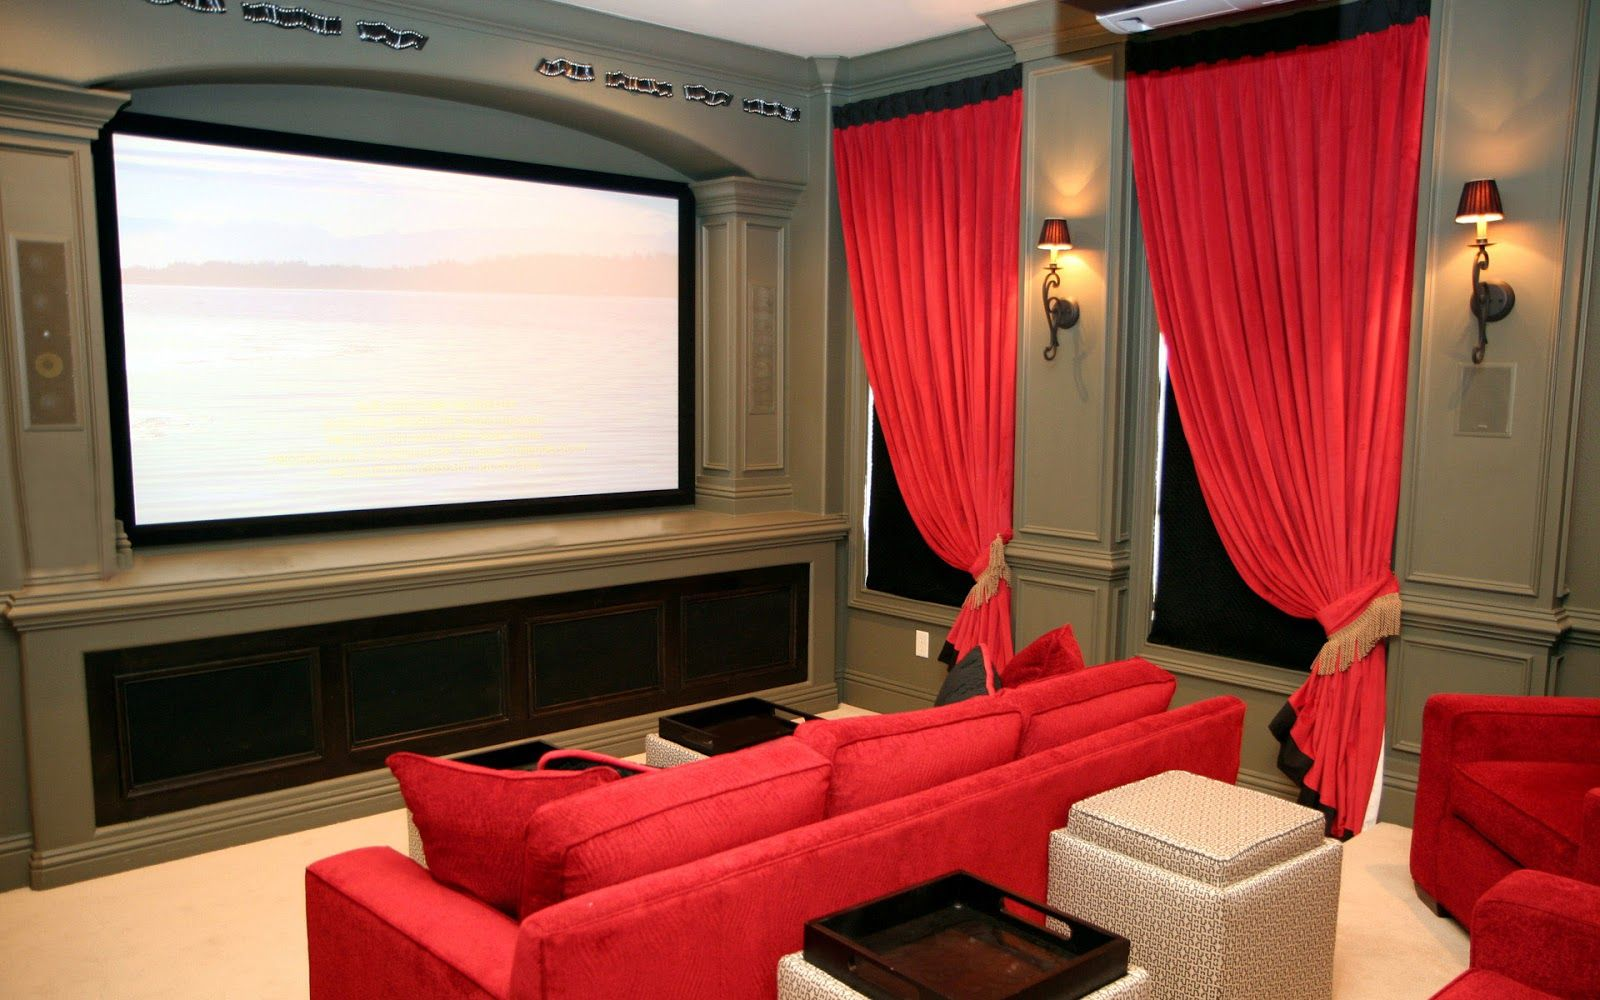 Best Images About Home Theater Room On Pinterest Theater - Designing home theater